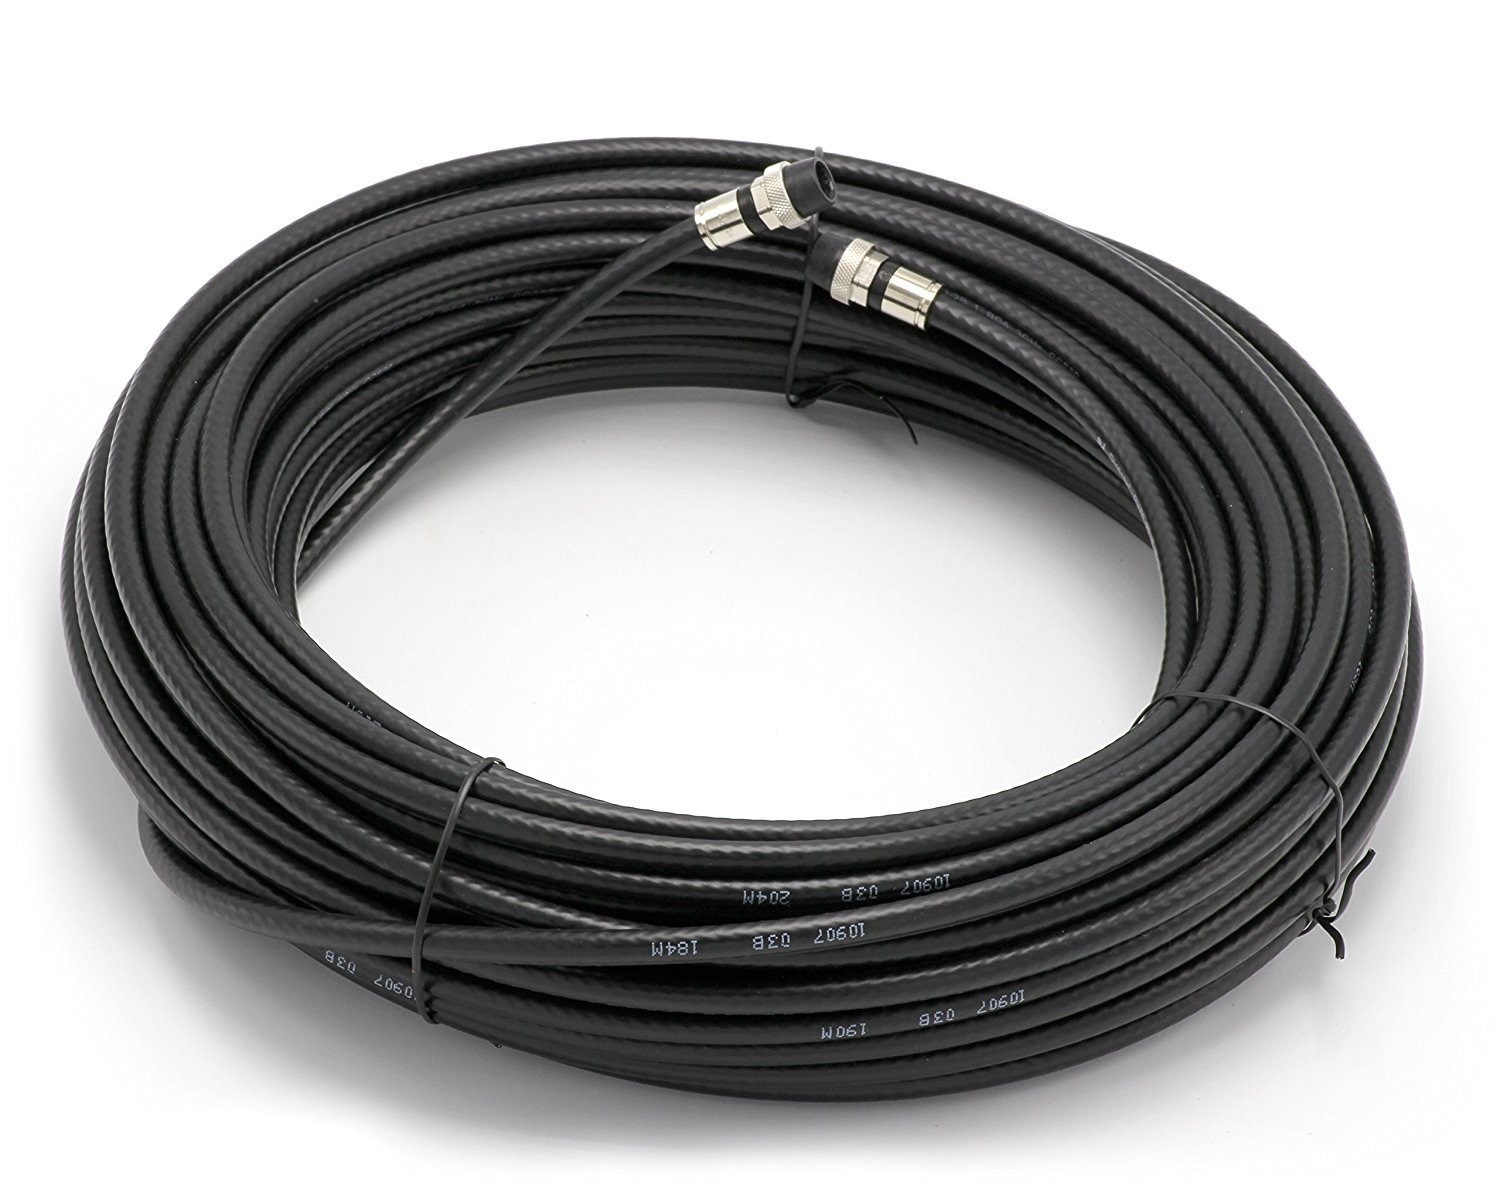 Antenna White RG6 Coaxial Cable F81 // RF Made in The USA THE CIMPLE CO Digital Coax for CATV Weather Proof with Rubber booted 100 Feet Satellite Internet Outdoor Rated Connectors